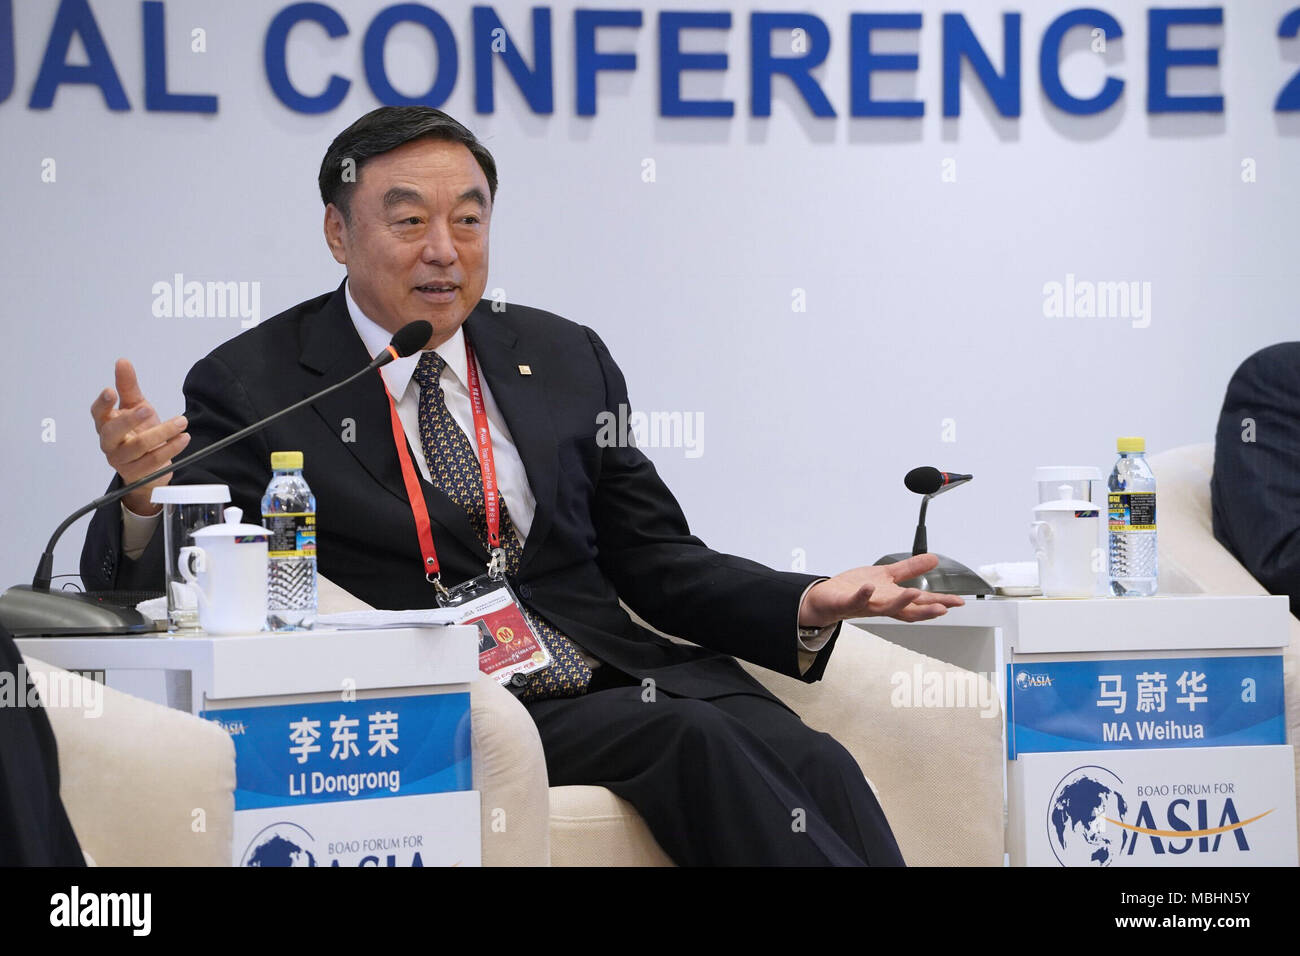 (180411) -- BOAO, April 11, 2018 (Xinhua) -- Former CEO of China Merchants Bank Ma Weihua, speaks at the session of 'The Future of Finance: To Change, or Be Changed?' during the Boao Forum for Asia Annual Conference 2018 in Boao, south China's Hainan Province, April 11, 2018. (Xinhua/Xing Guangli) (wyl) - Stock Image